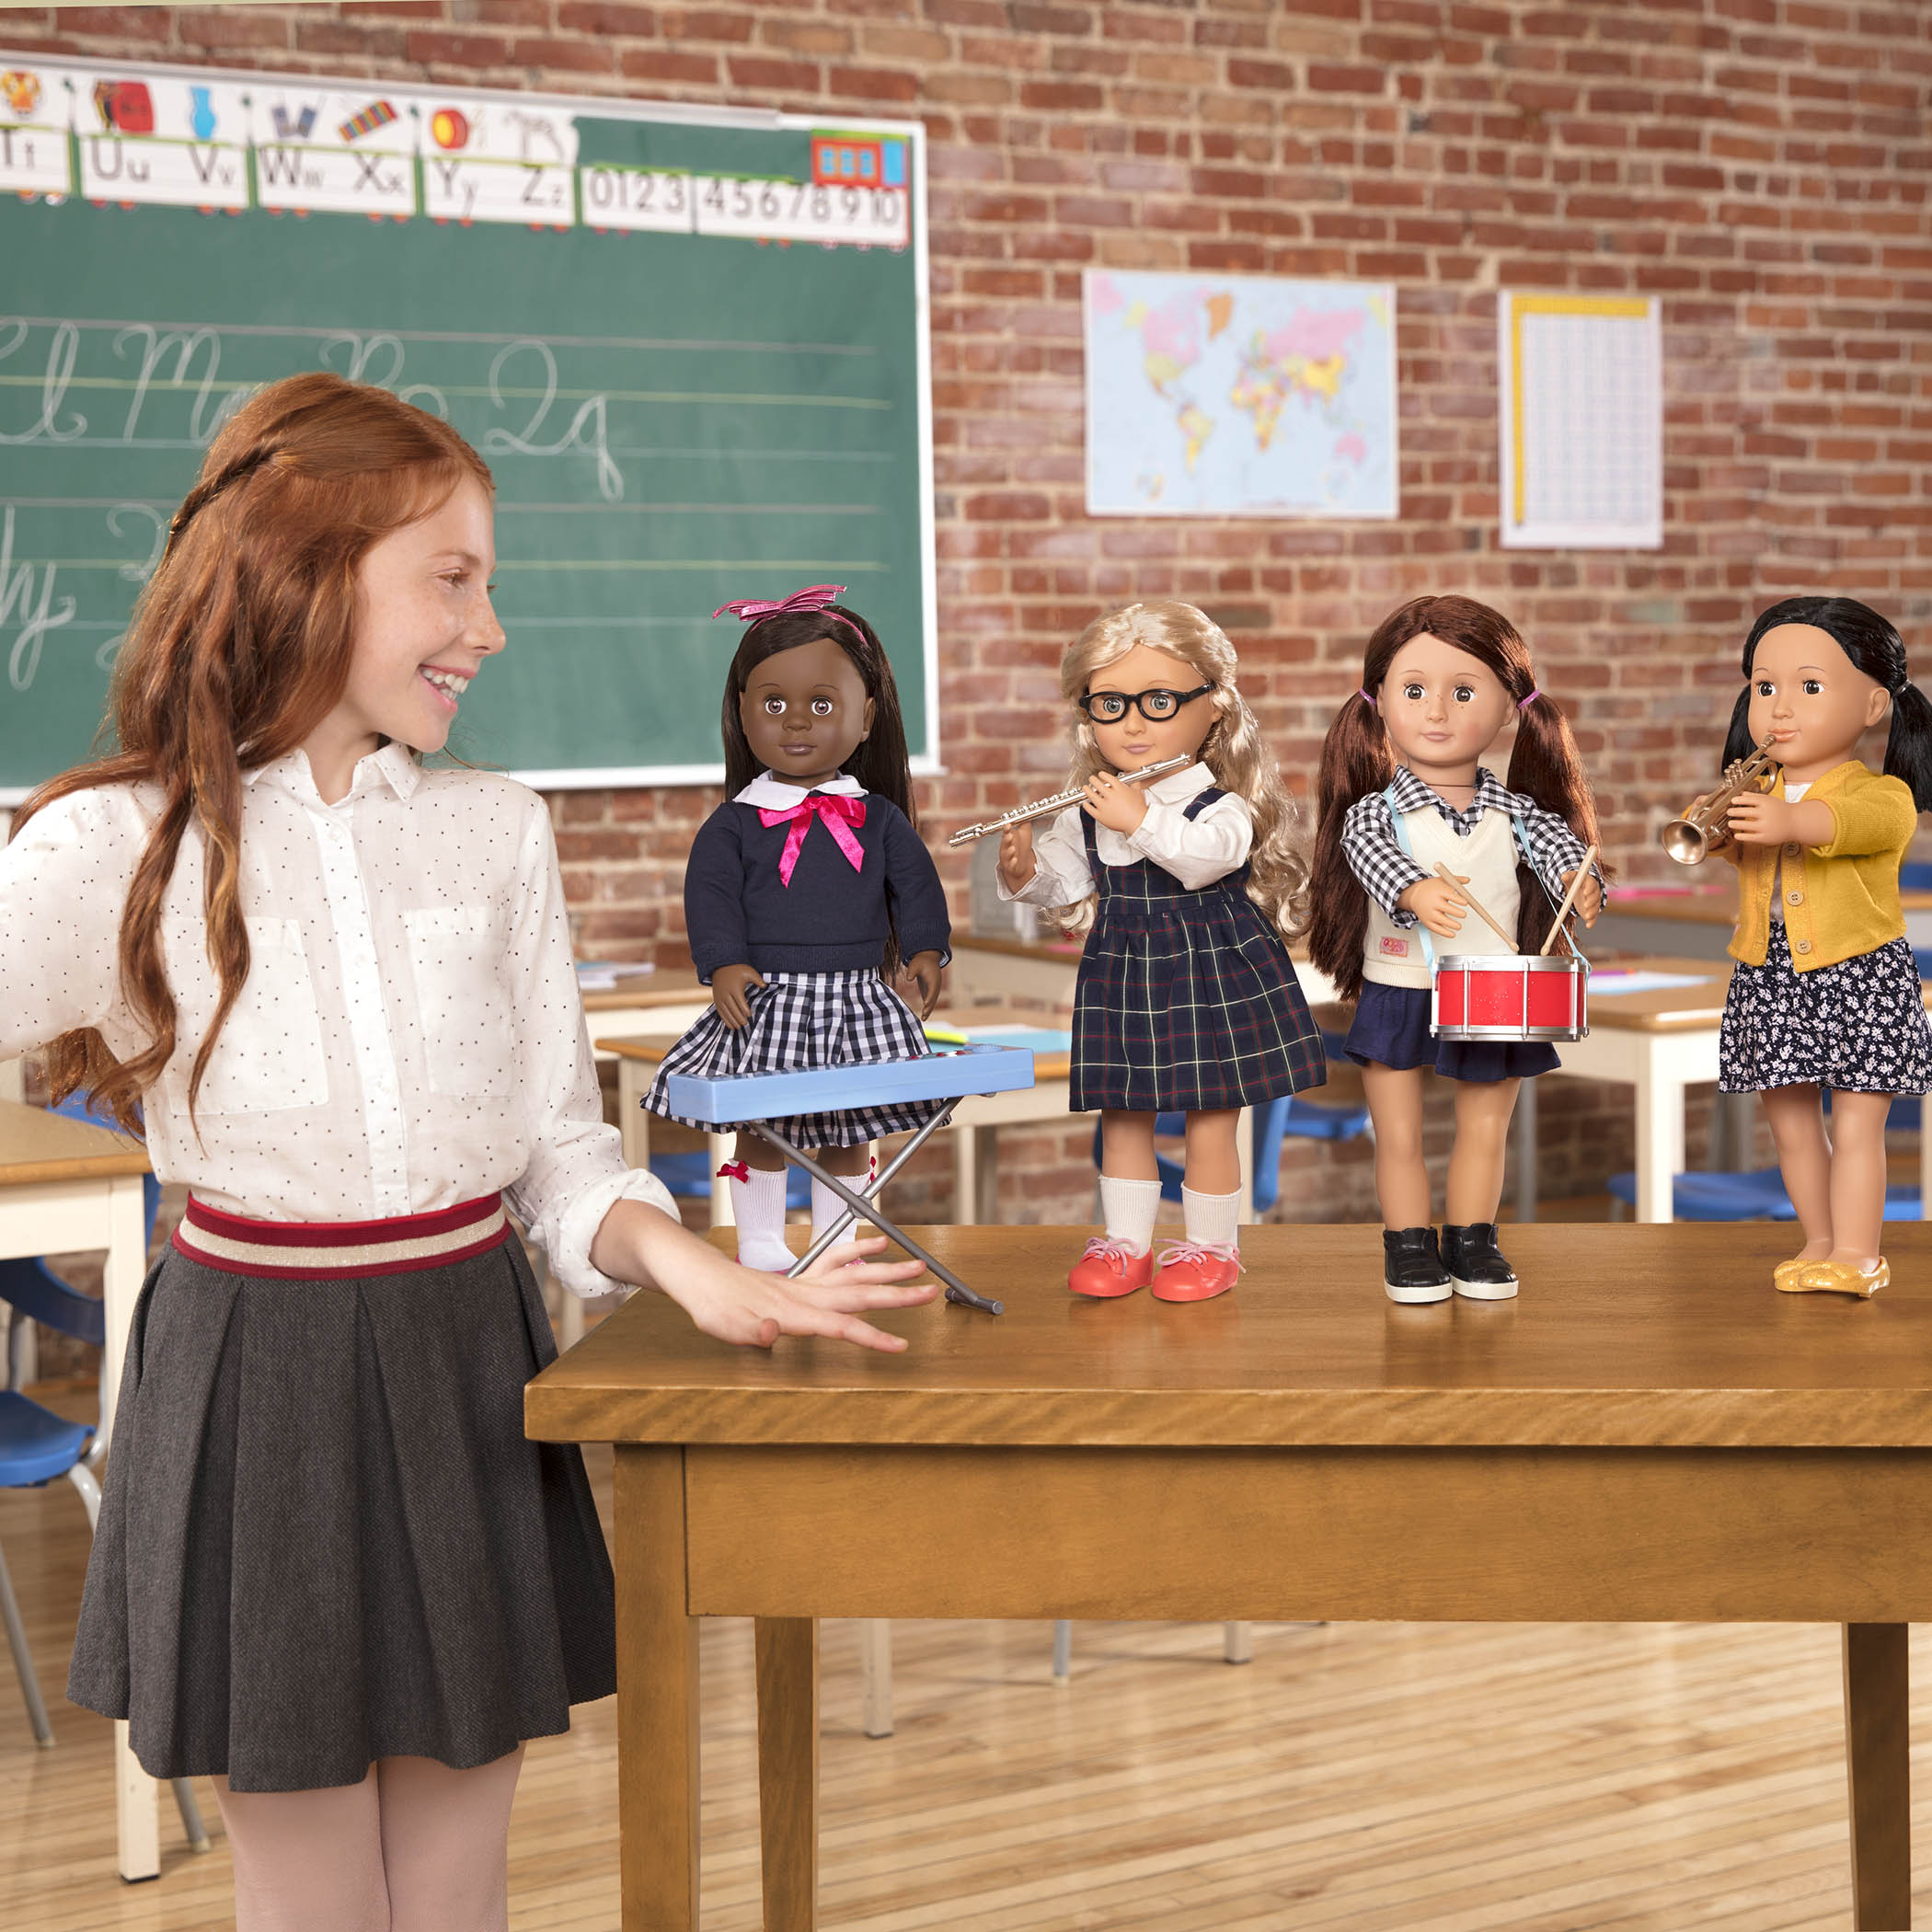 School Band Playset with girl in classroom playing with dolls